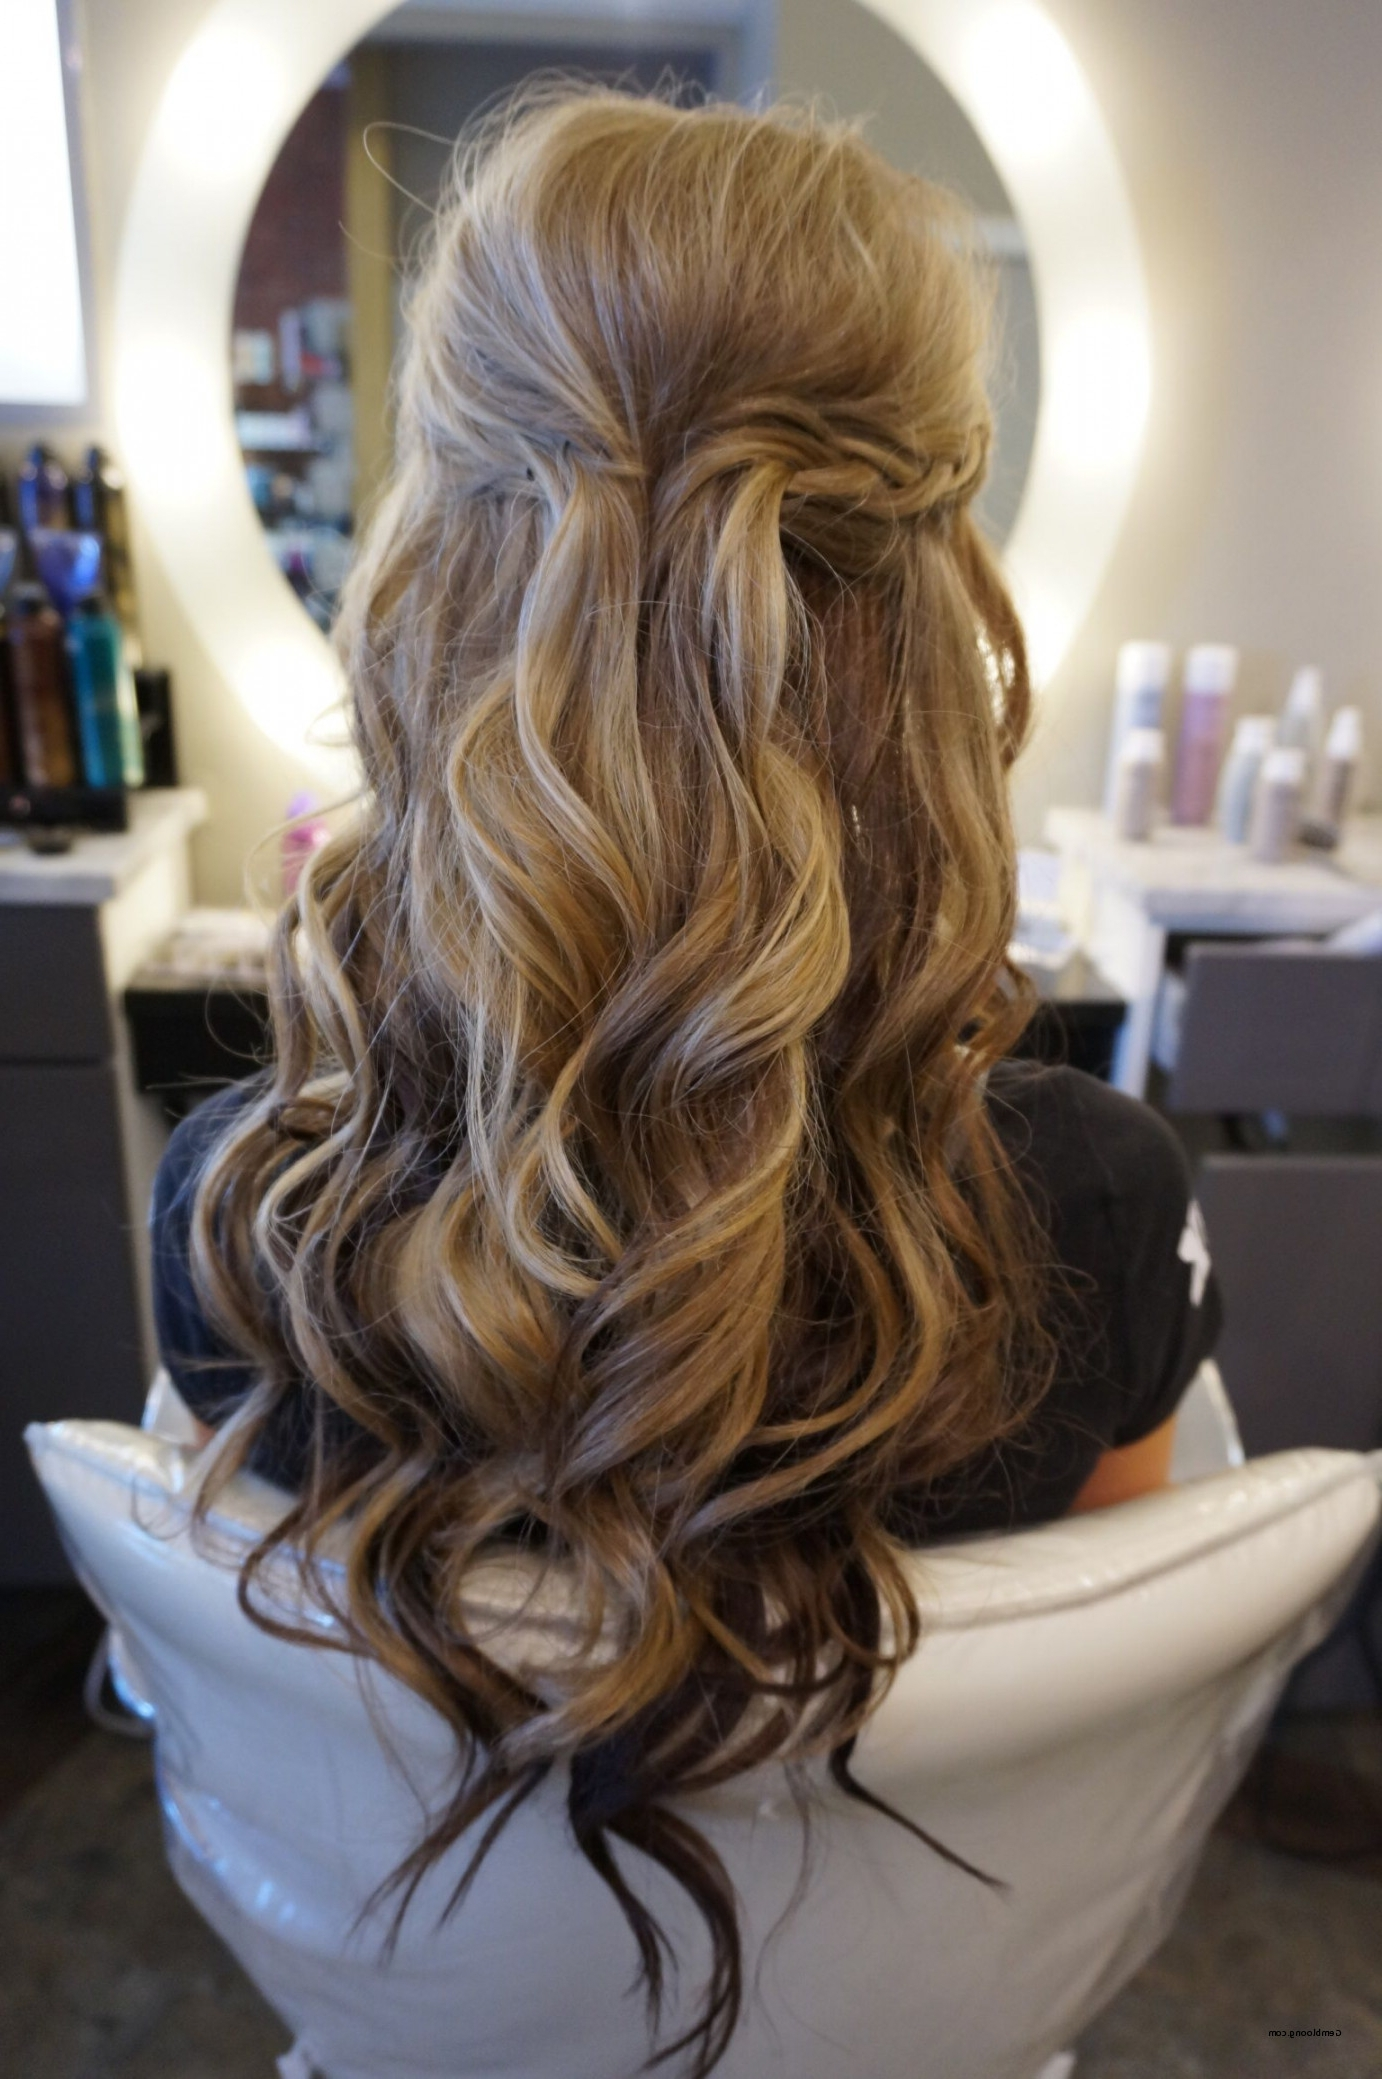 Wedding Hairstyles Loose Curls Unique Long Hair With Loose Curls For Recent Hair Half Up Half Down Wedding Hairstyles Long Curly (View 13 of 15)